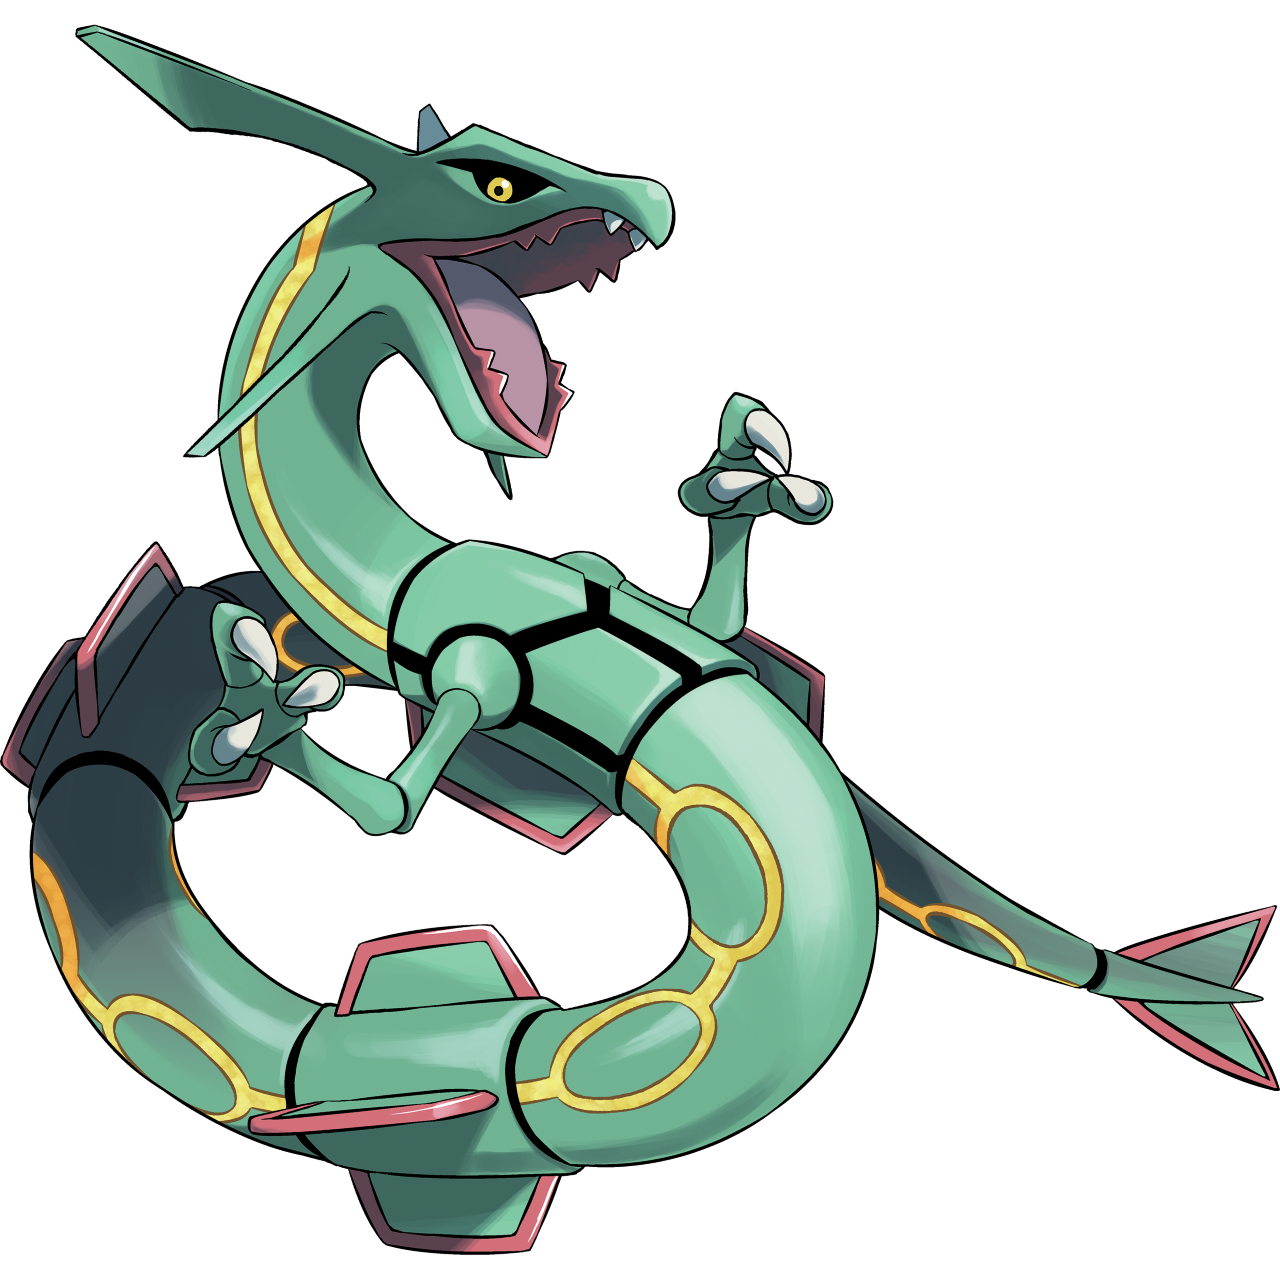 Rayquaza transparent mage. Screenshots images and pictures